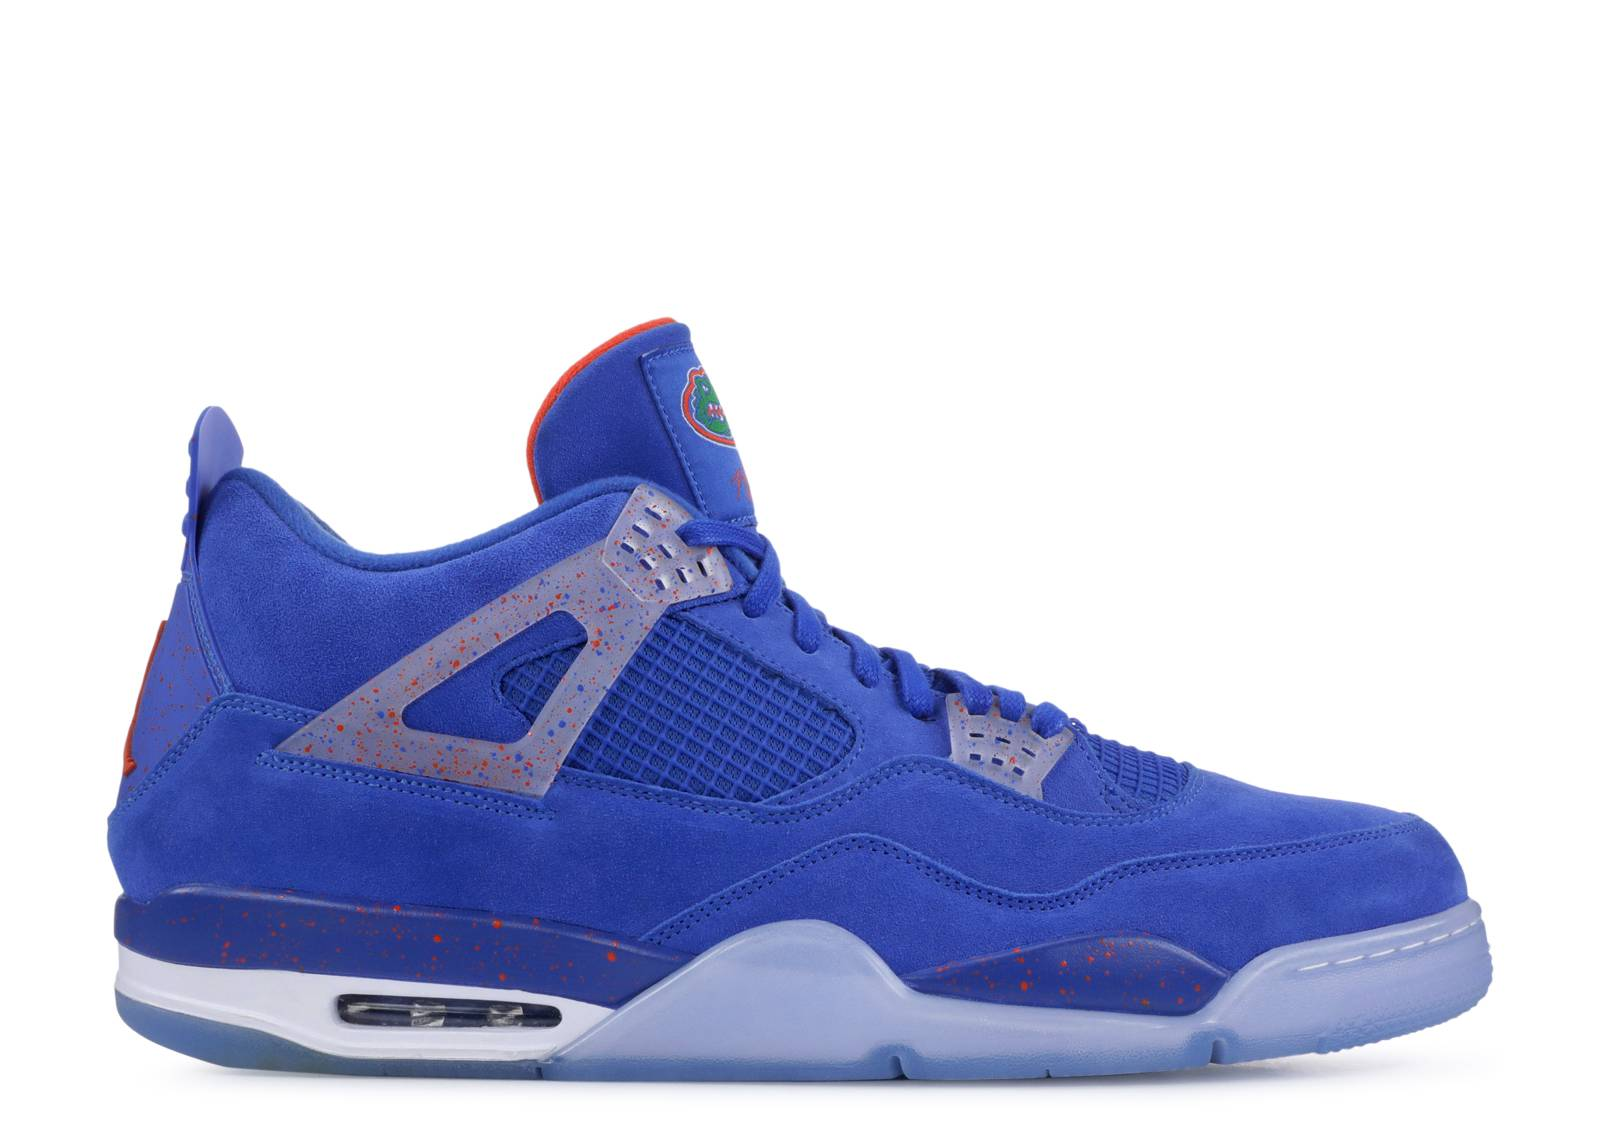 2dc63fab7e3 Air Jordan 4 'Florida Gators' PE